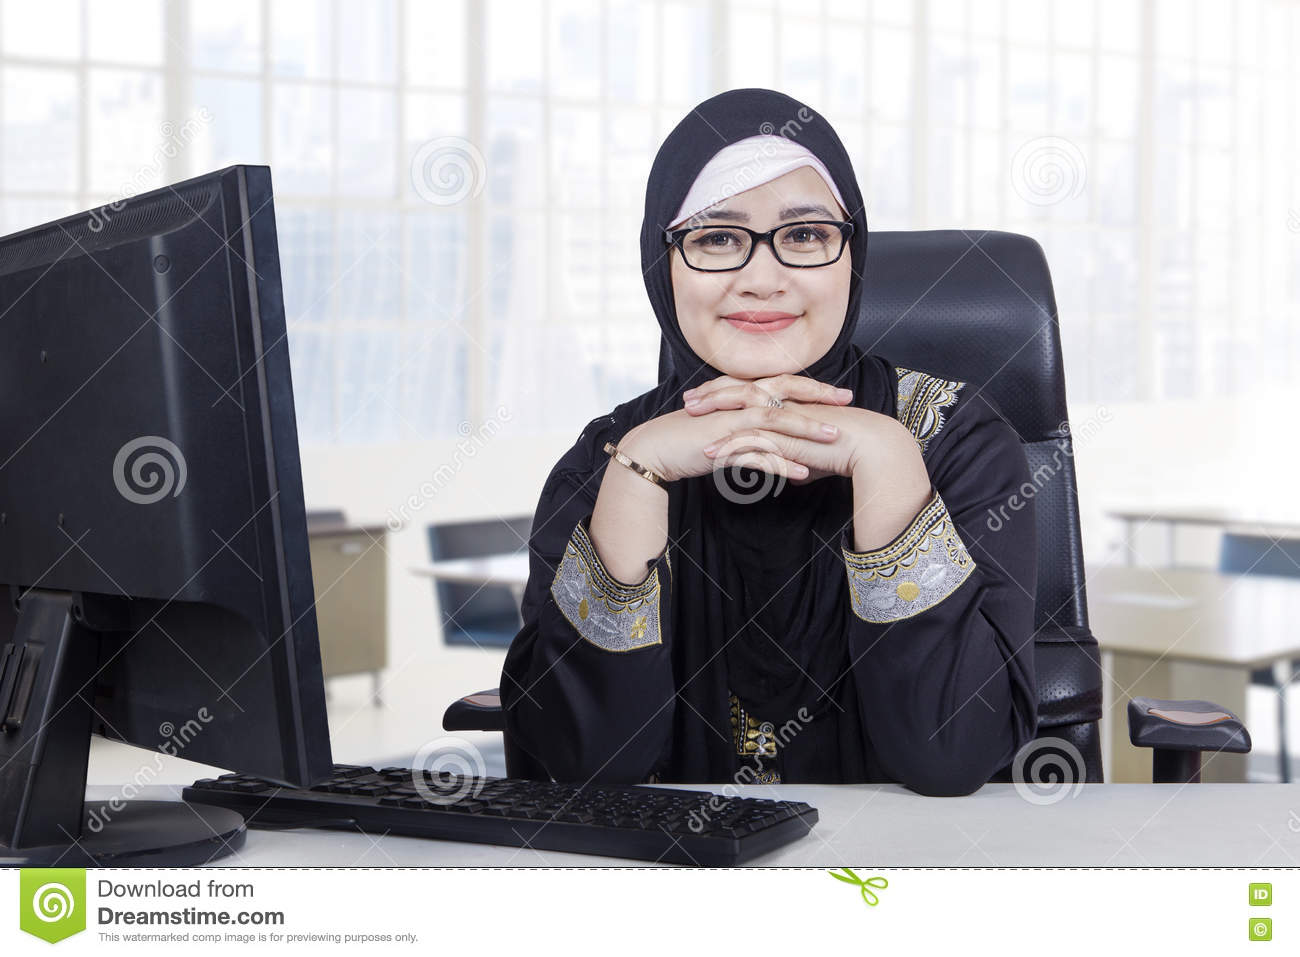 Arabic woman with headscarf smiling in office